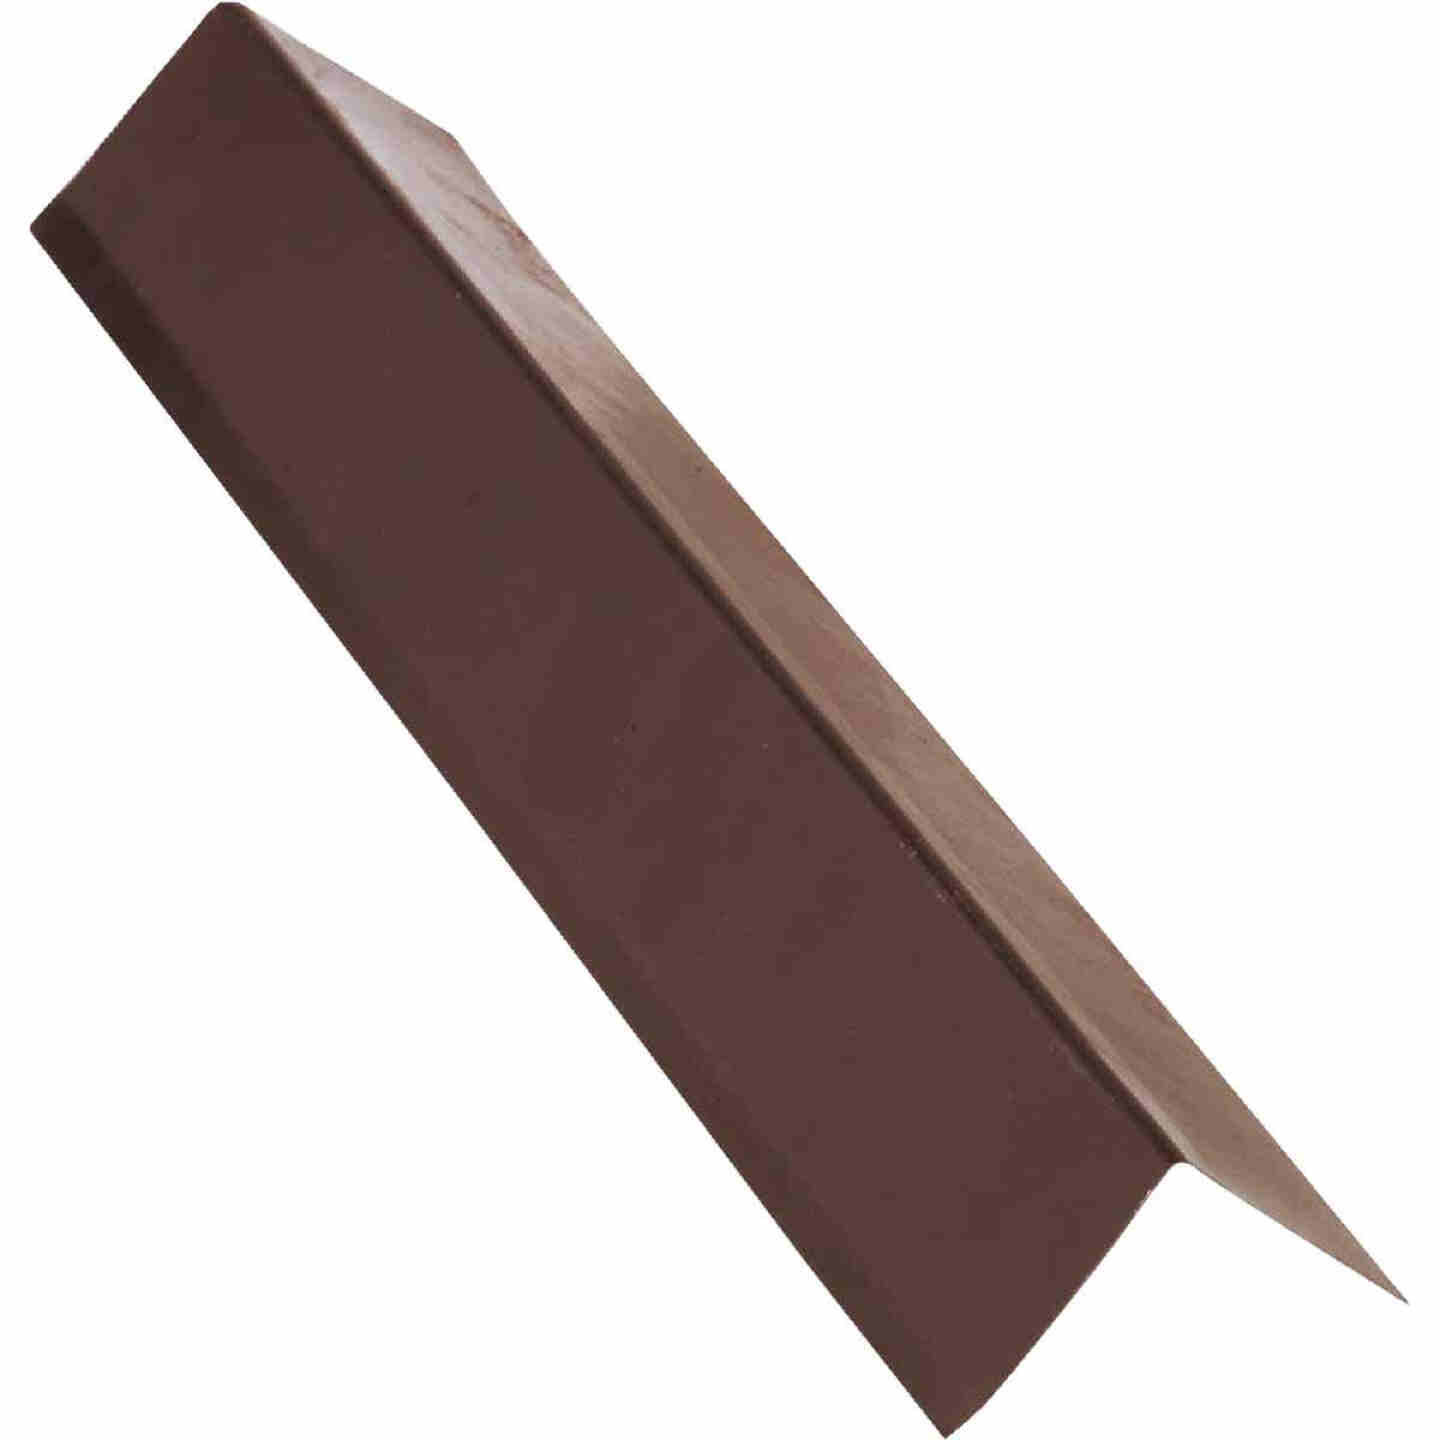 NorWesco A 2 In. X 2 In. Galvanized Steel Roof & Drip Edge Flashing, Brown Image 1